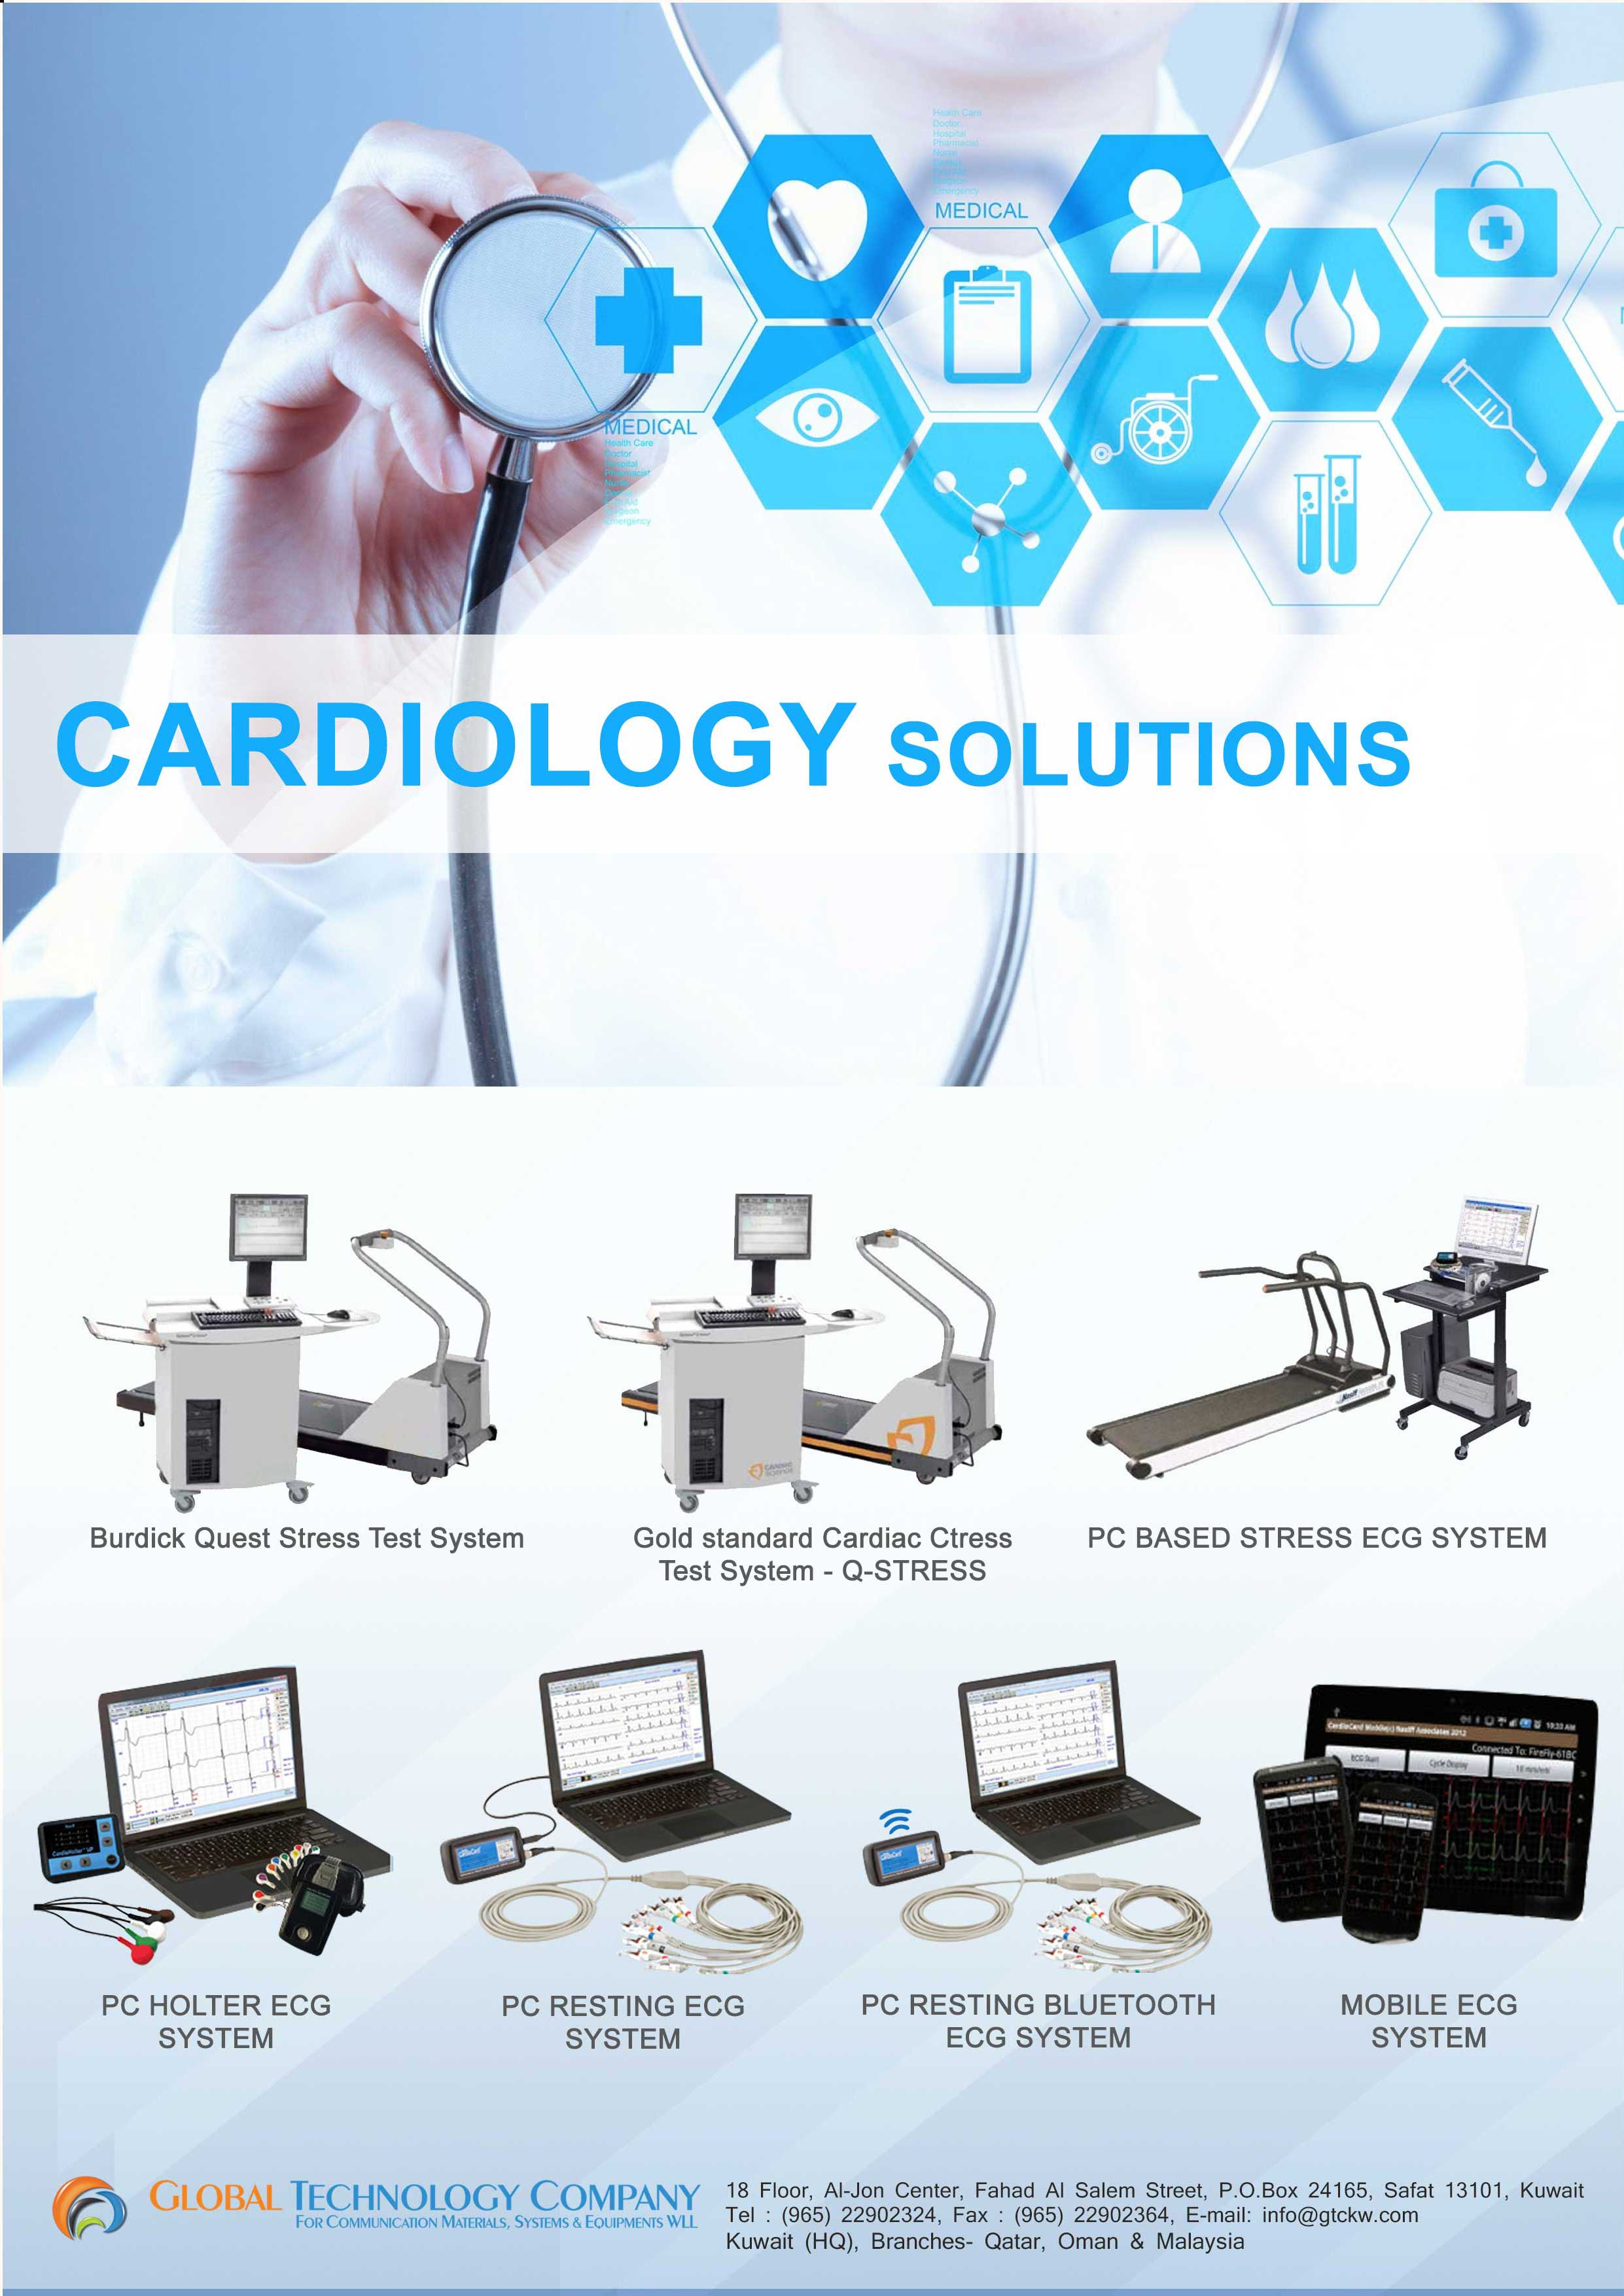 Global Technology Company Medical solutions and services